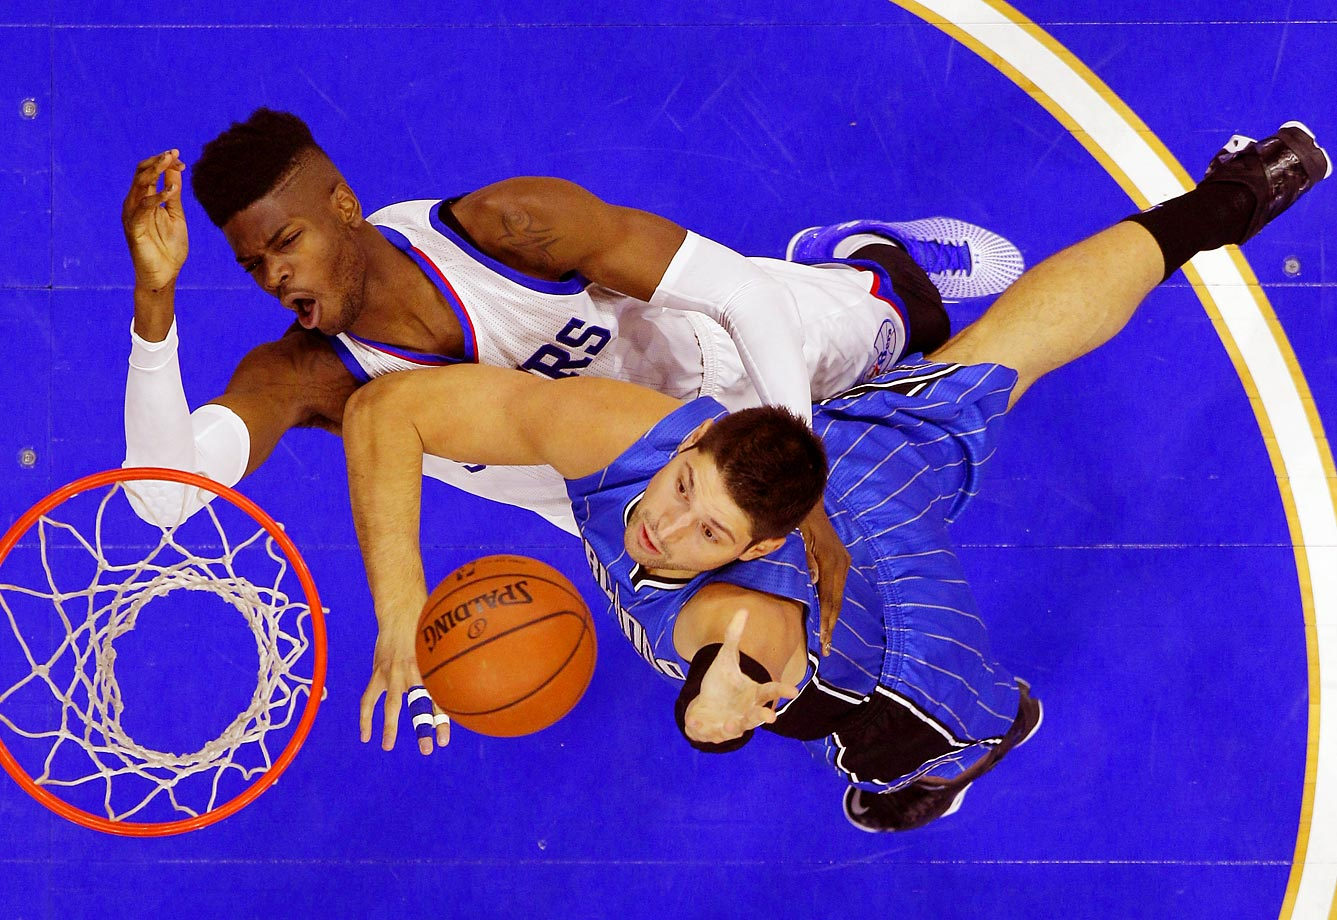 Nikola Vucevic of the Orlando Magic goes up for a shot past Nerlens Noel of the Philadelphia 76ers. The Magic won their first game of the season 91-89.